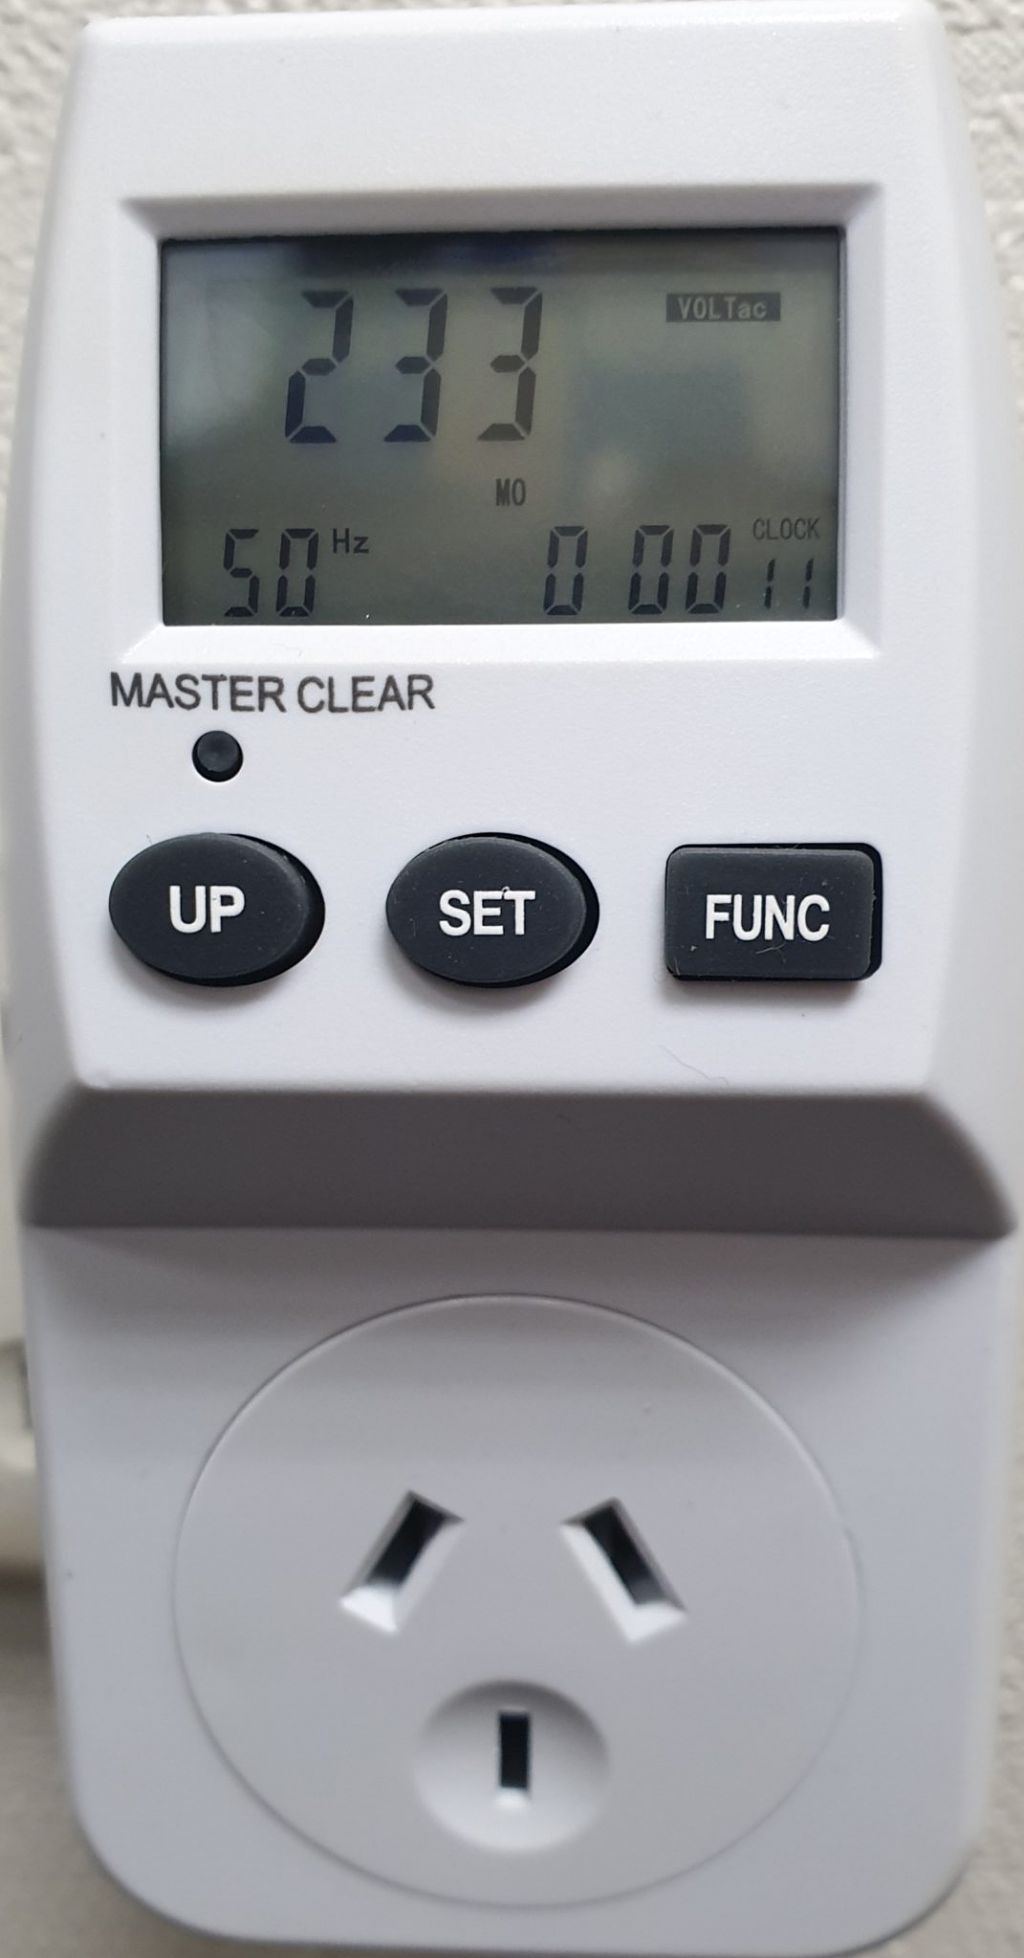 Plug-in energy monitor